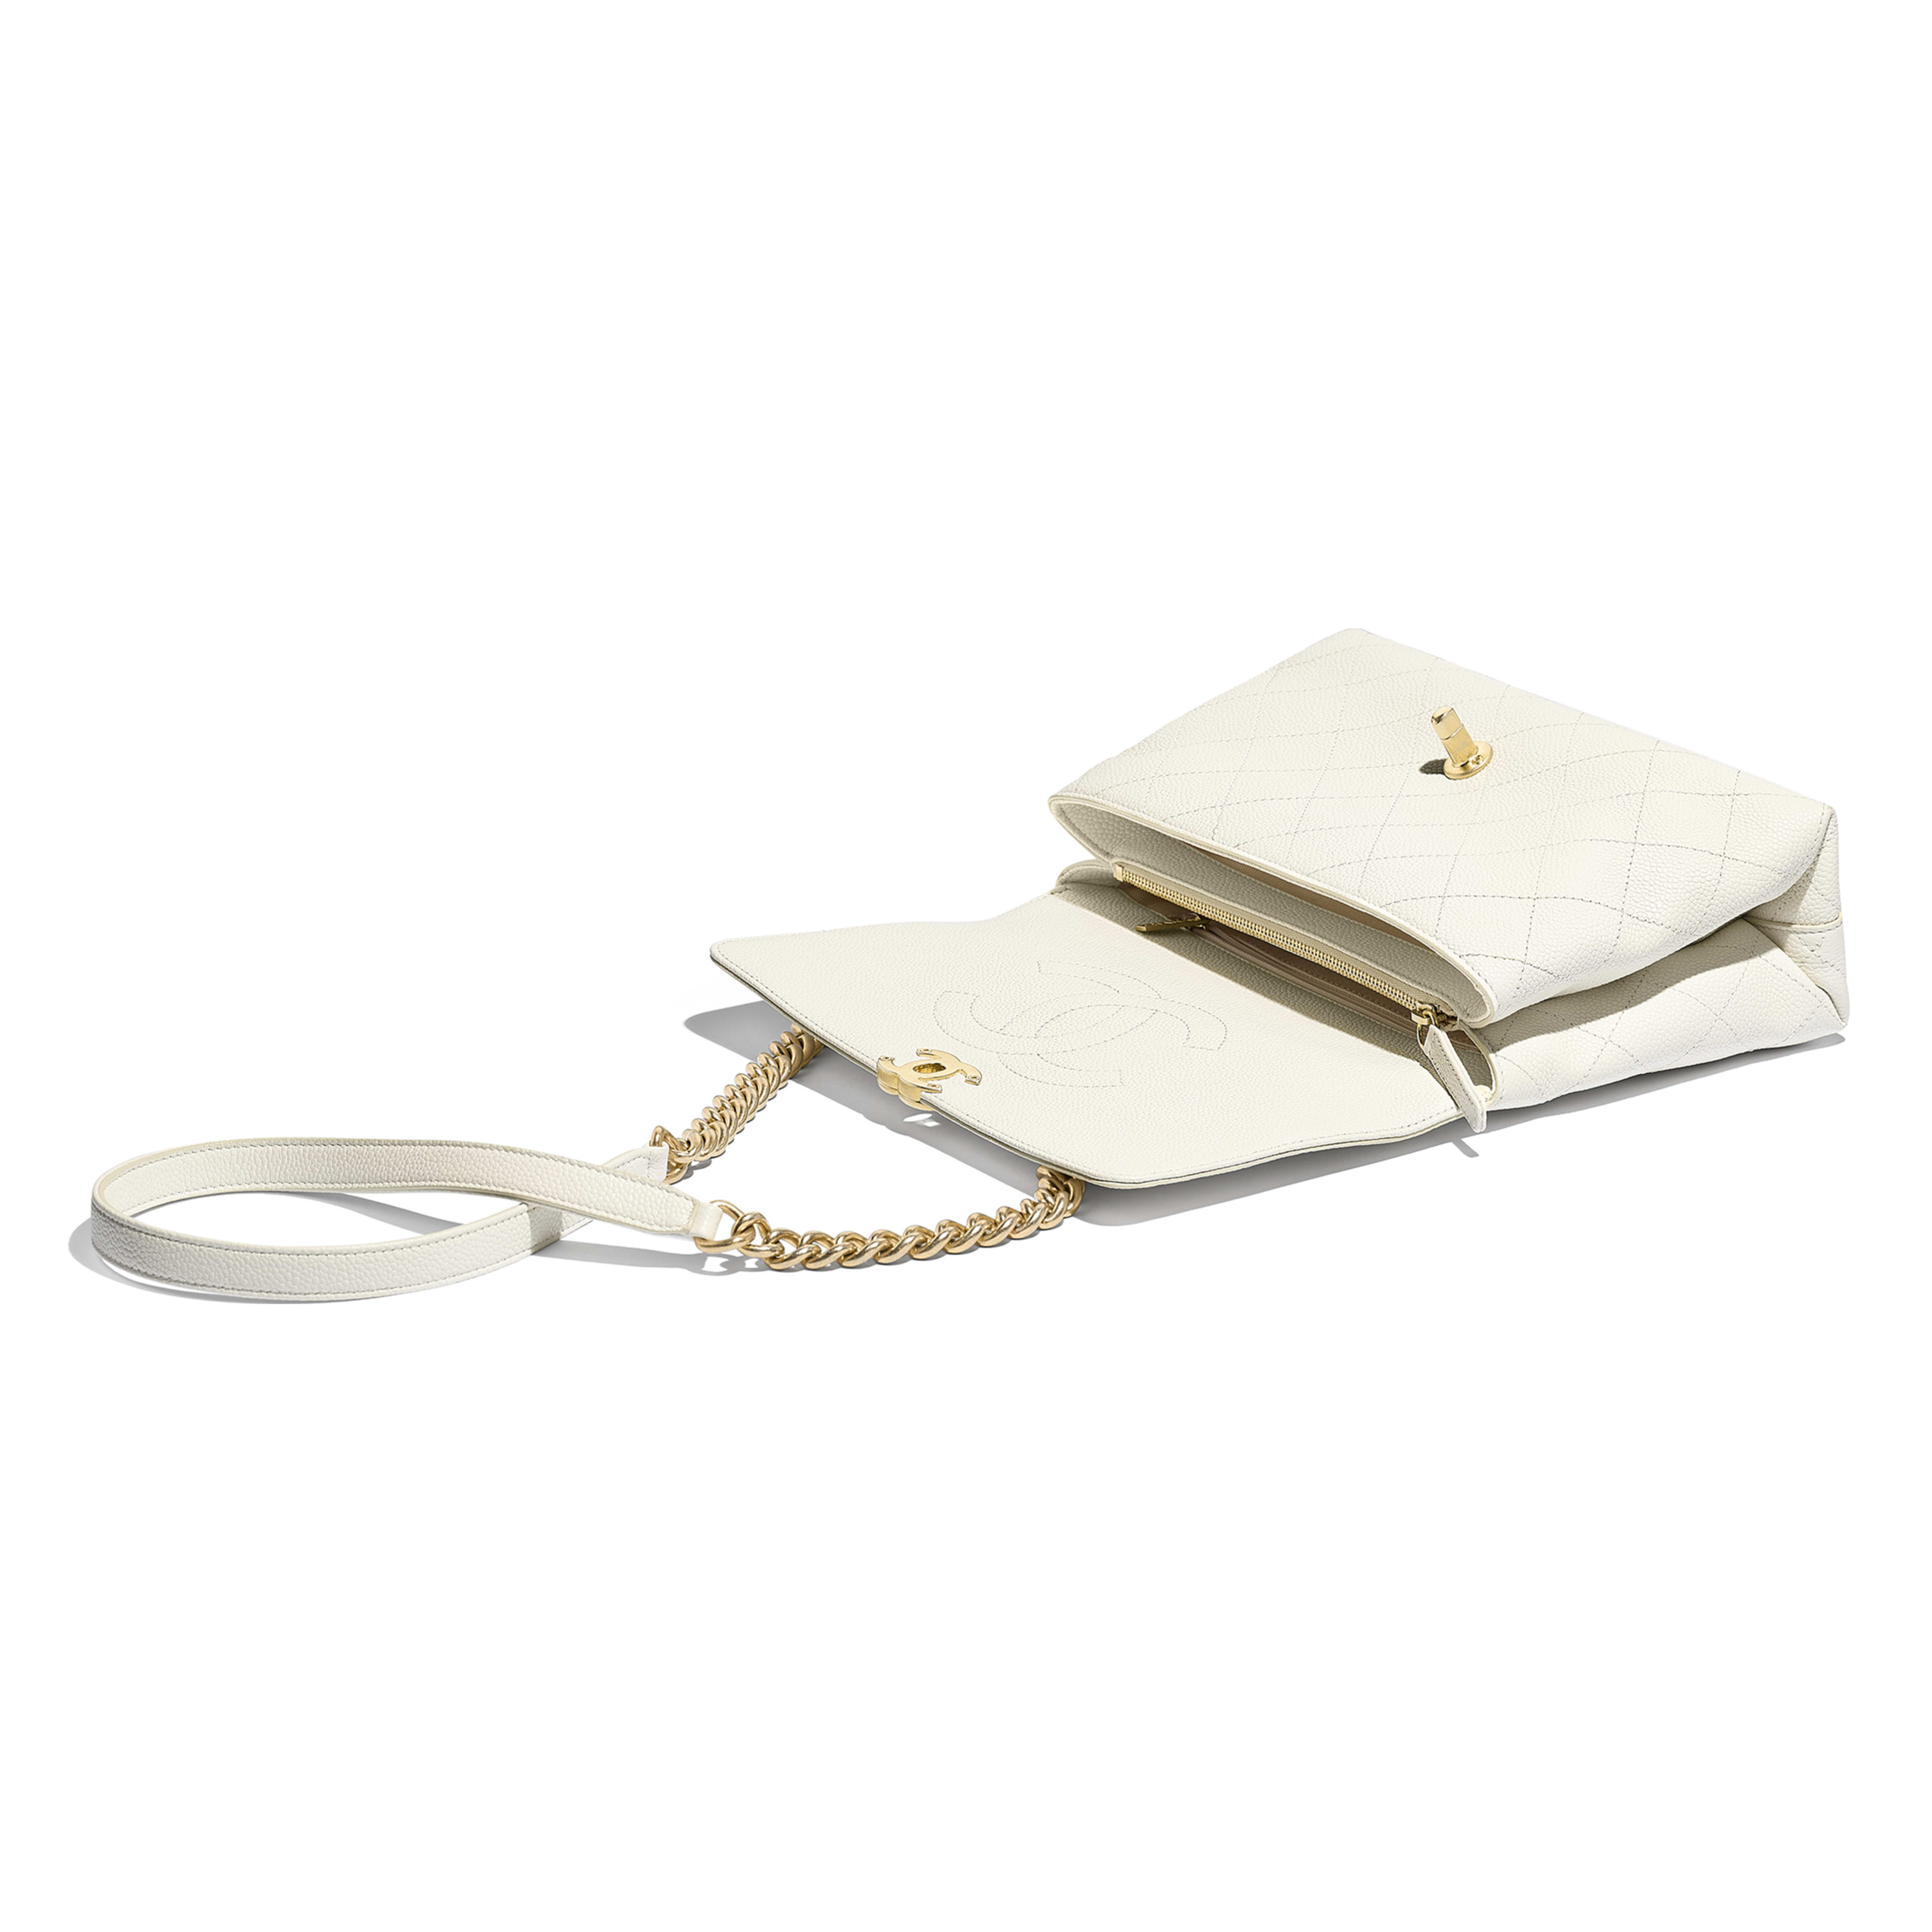 Flap Bag - White - Grained Calfskin & Gold-Tone Metal - Other view - see full sized version